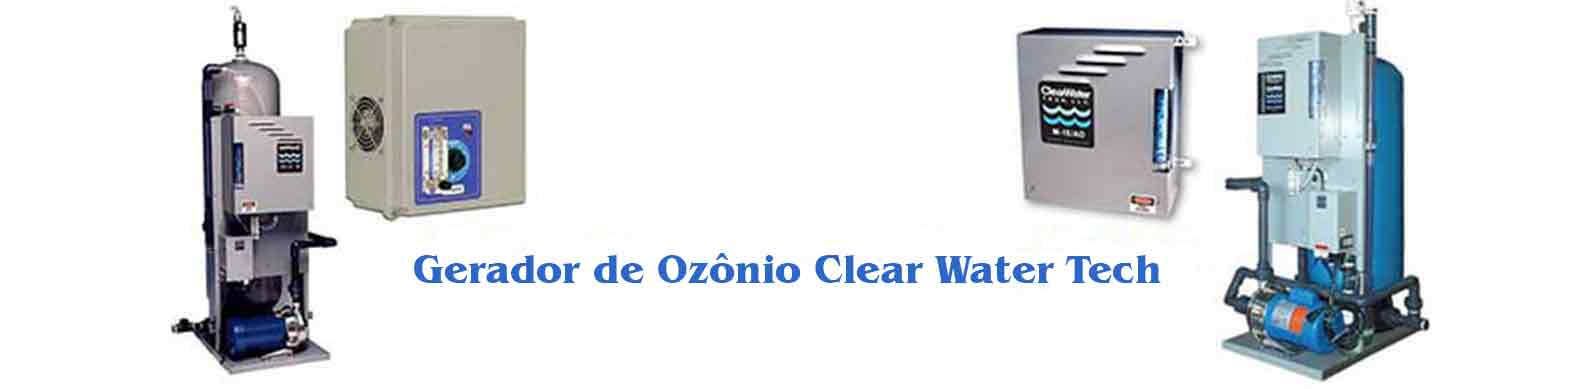 gerador-de-ozonio-clear-water-tech.jpg